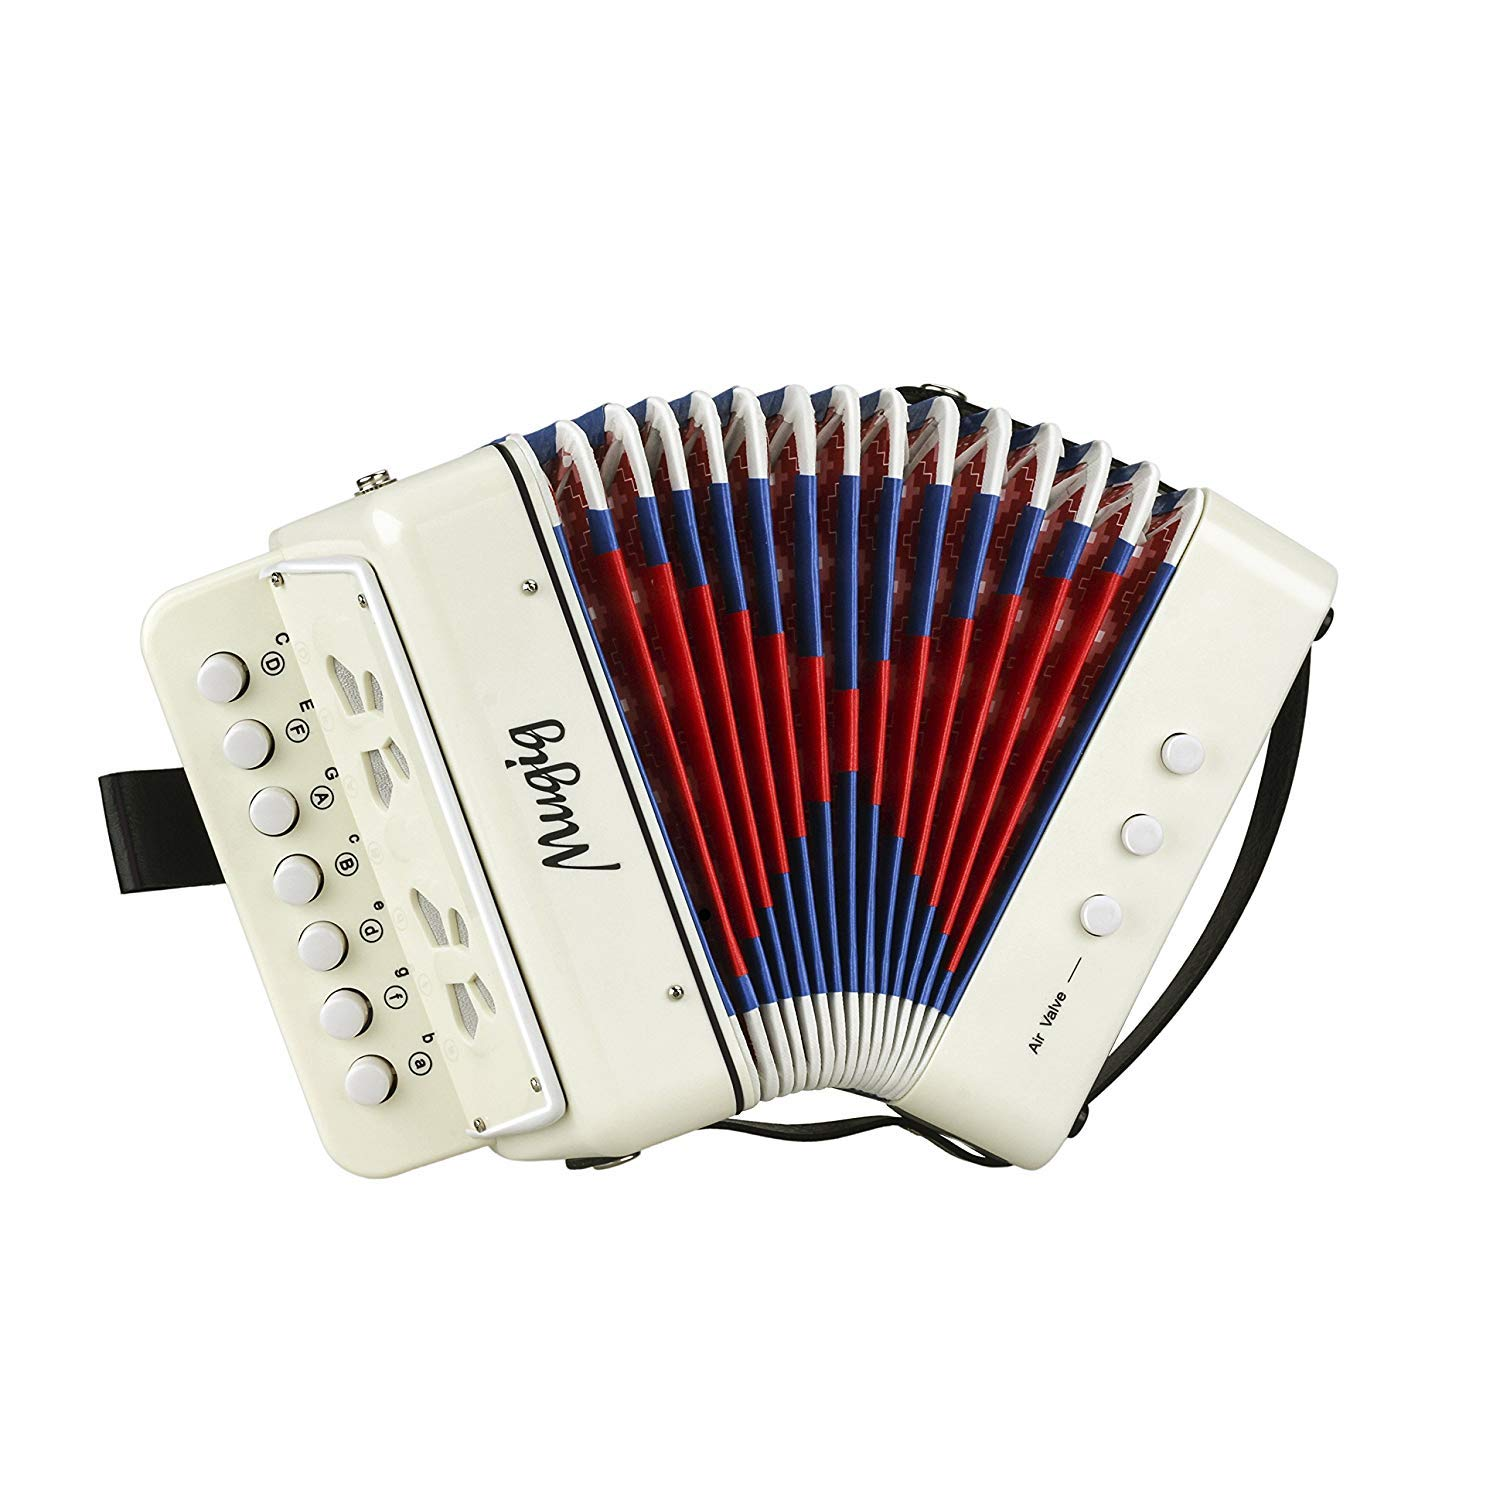 Mugig Kids Accordion, Ten Keys Toy Accordion with 3 Air Valves and Hand Strap, Mini Musical Instrument for Early Childhood Teaching, Solo and Ensemble Instrument, Gift for Kids(White)